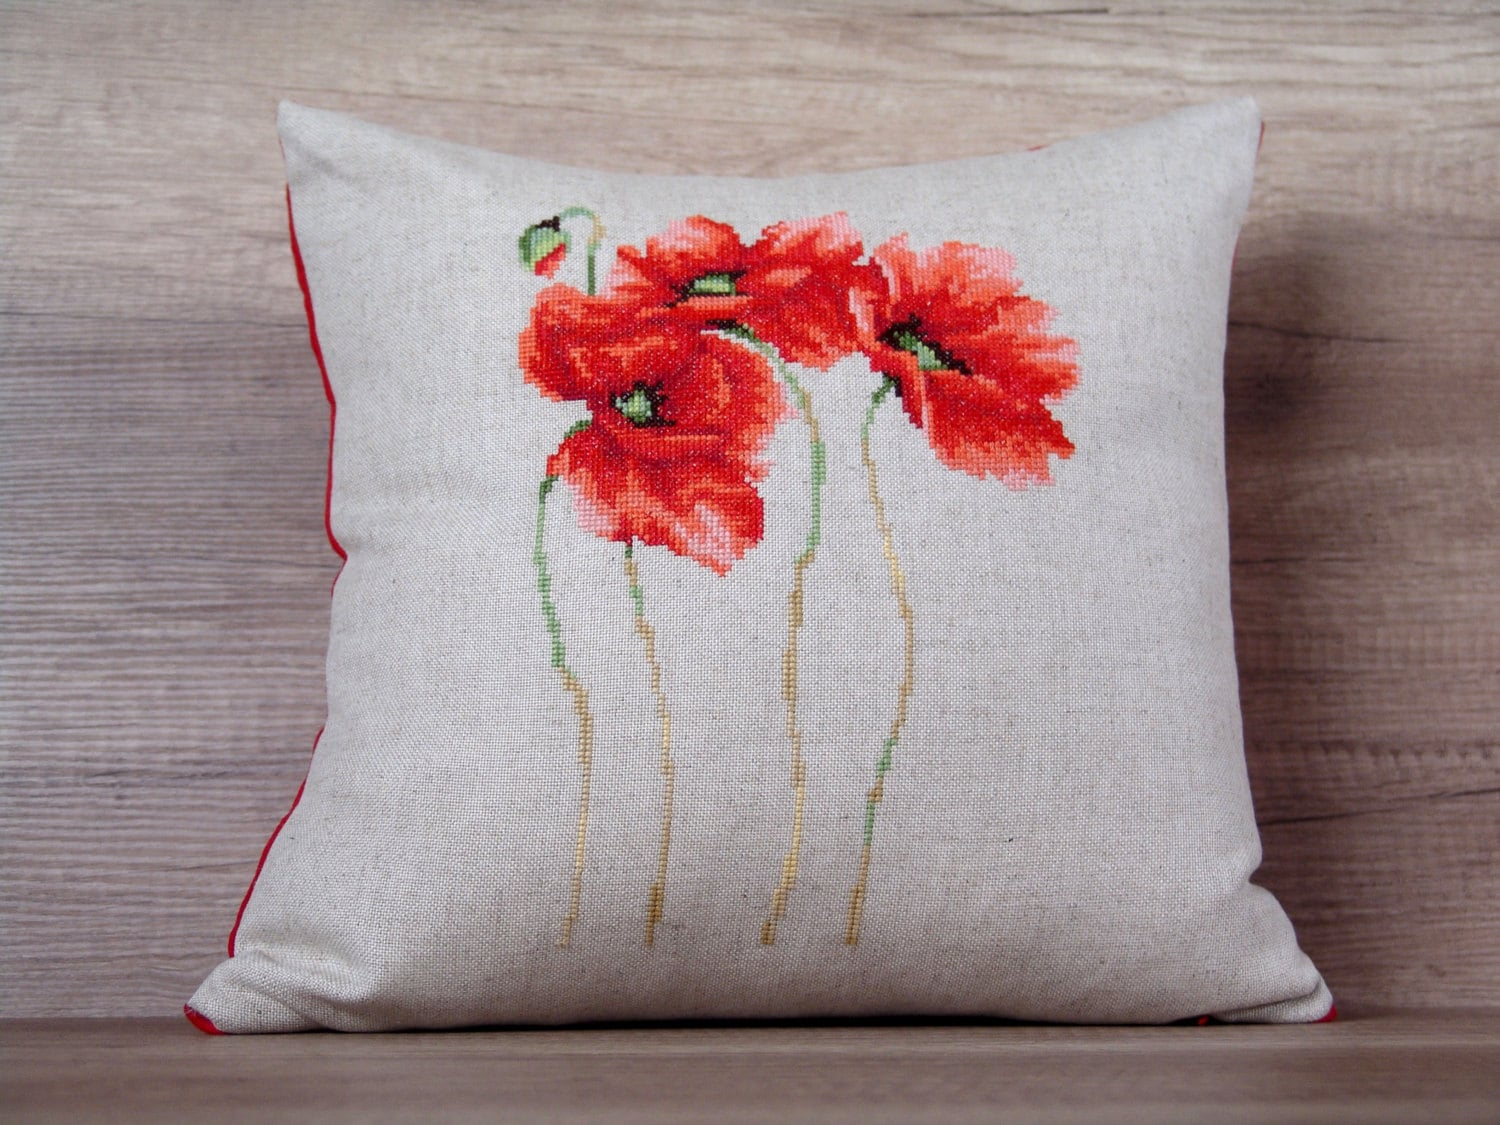 Red Poppy Decorative Pillow : Red poppy flowers cross-stitch throw pillow case gift